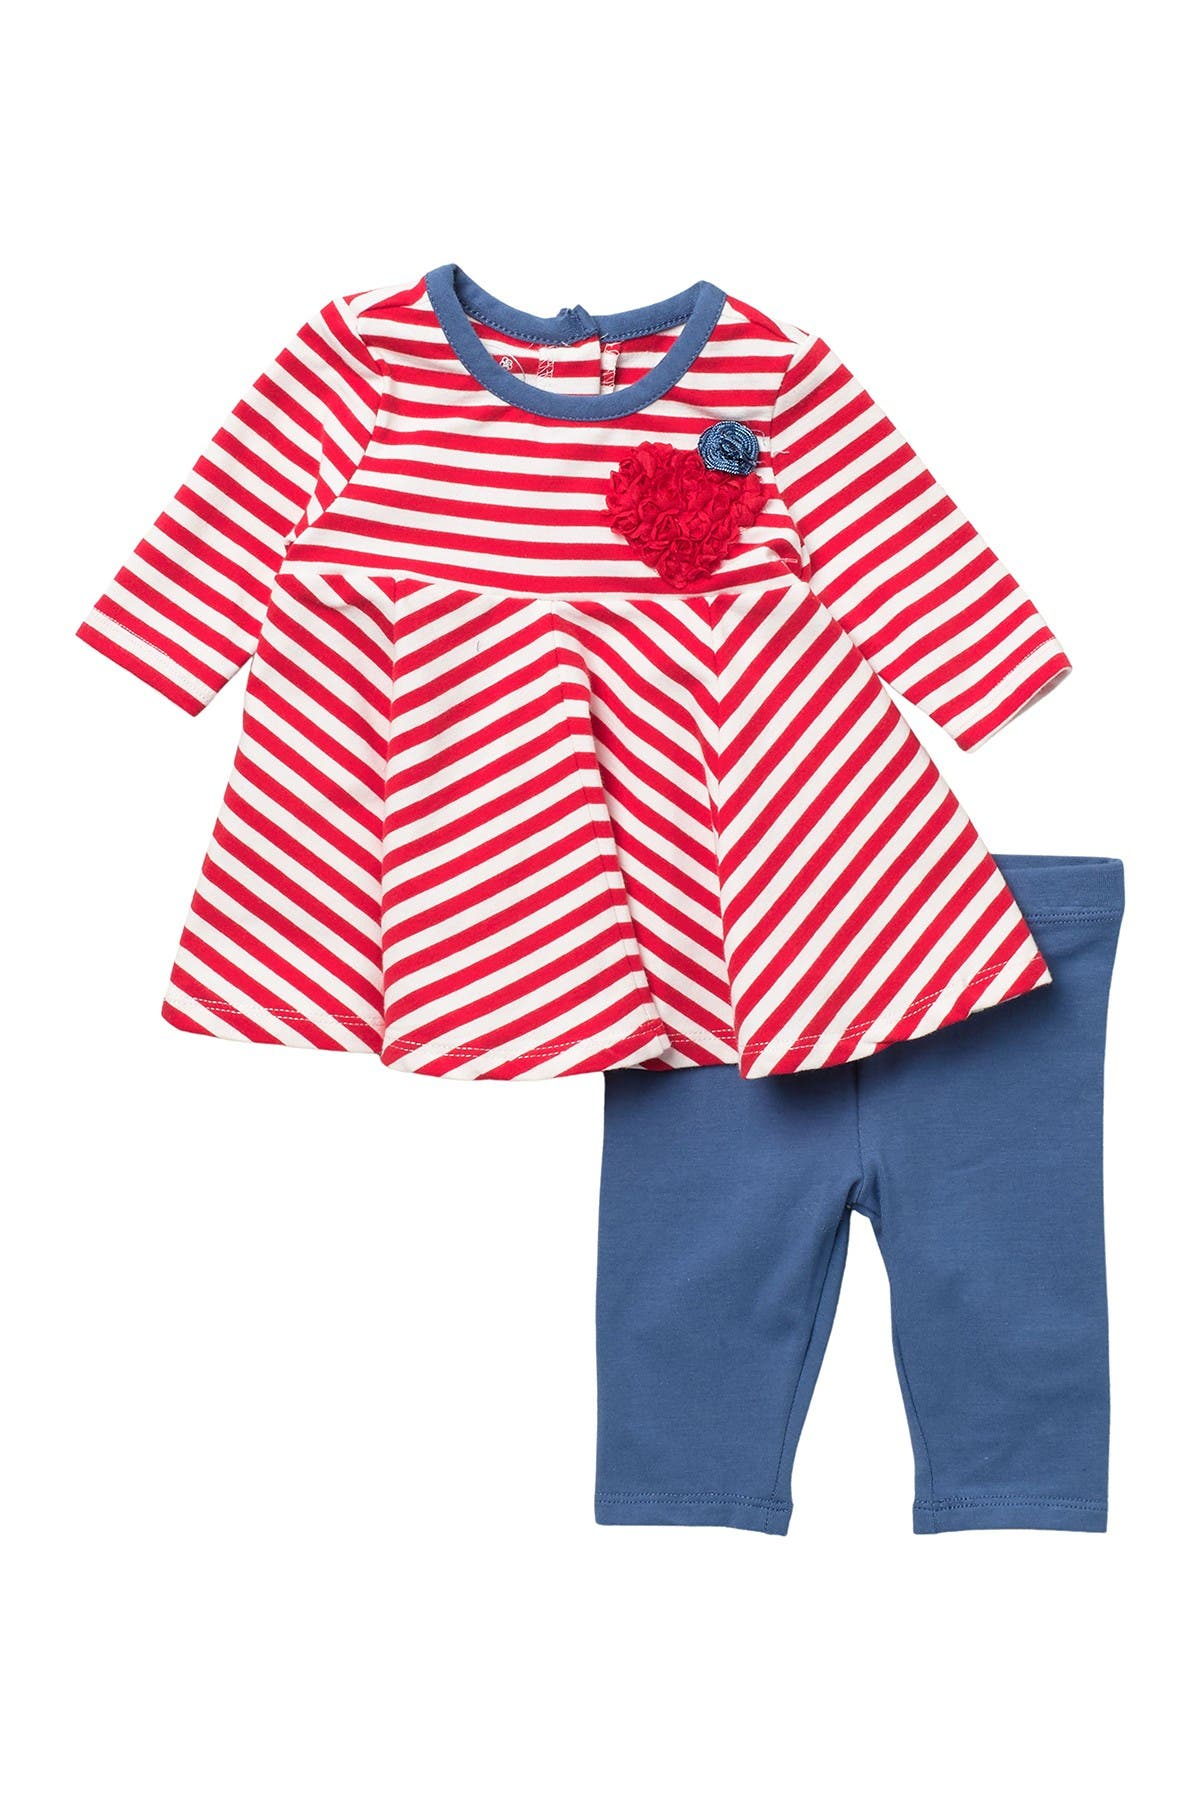 Image of Pippa & Julie Stripe Capri Set